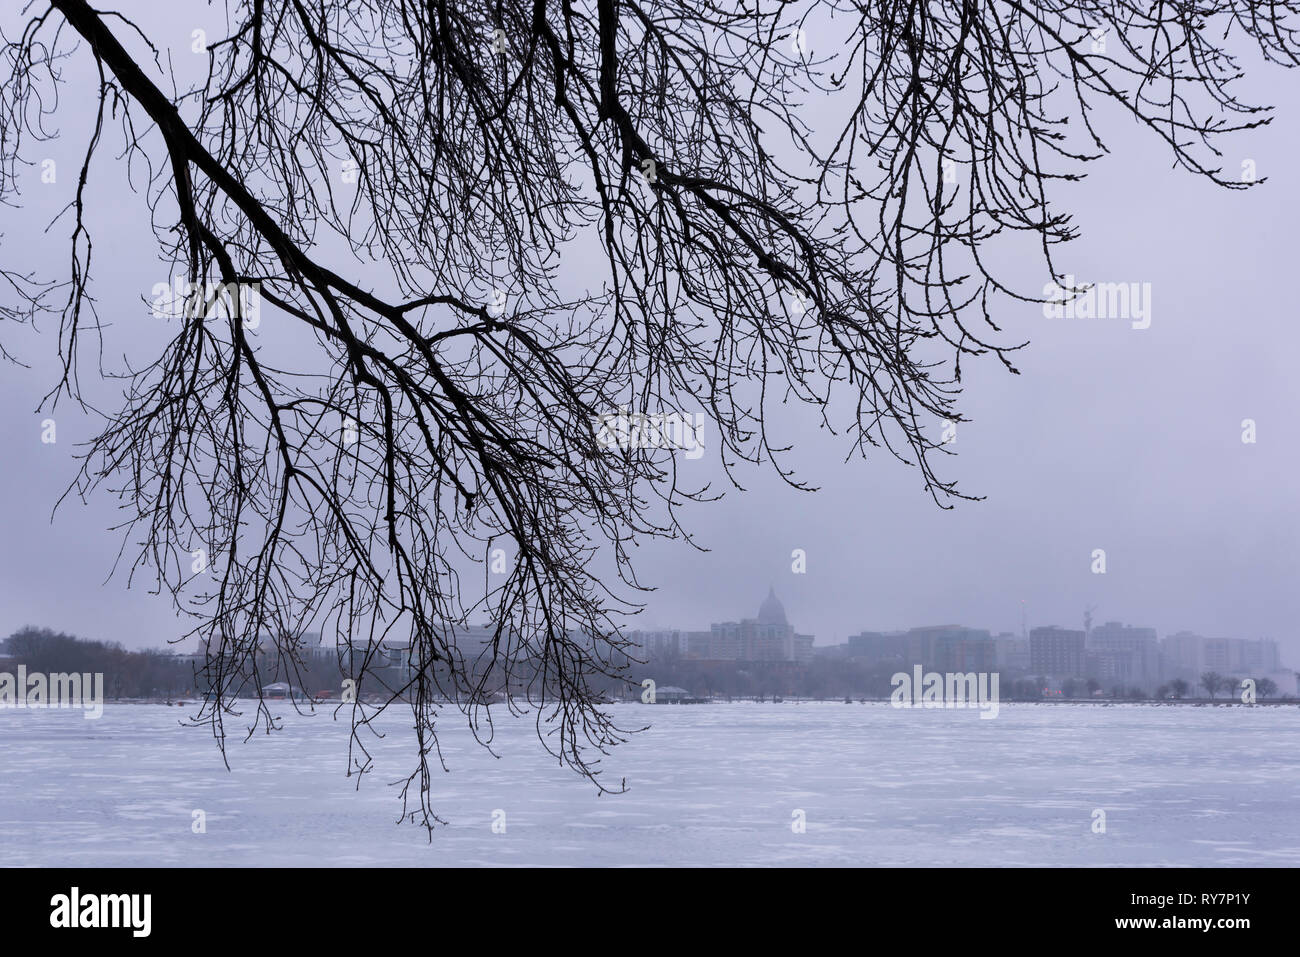 Winter weather in Madison, Wisconsin Stock Photo: 240501463